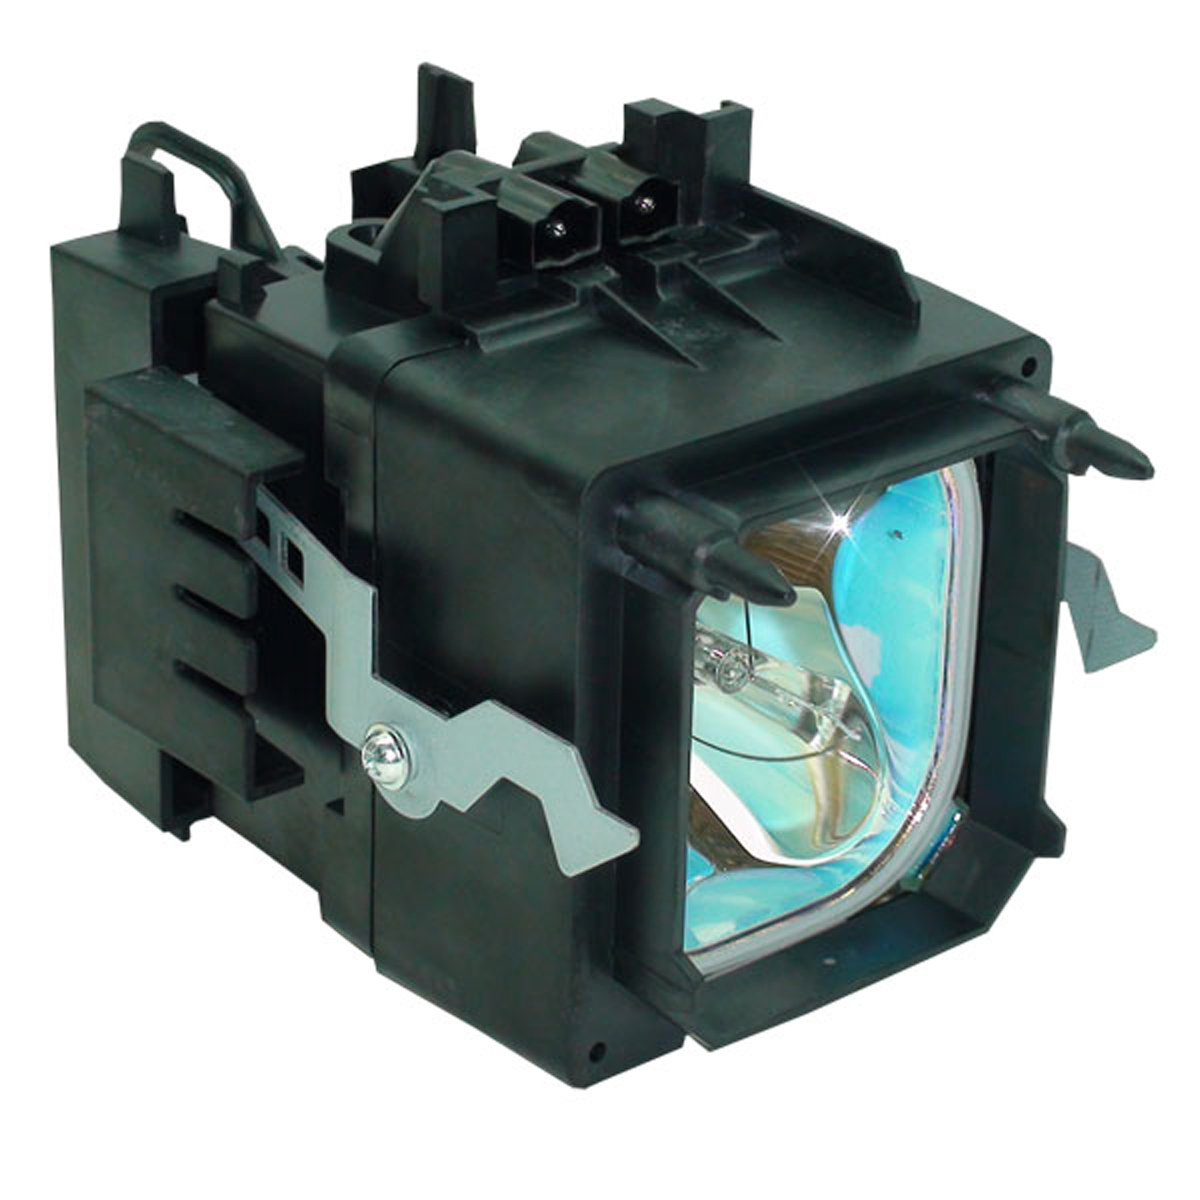 Lutema TV Lamp Replacement For Sony KDS-R50XBR1